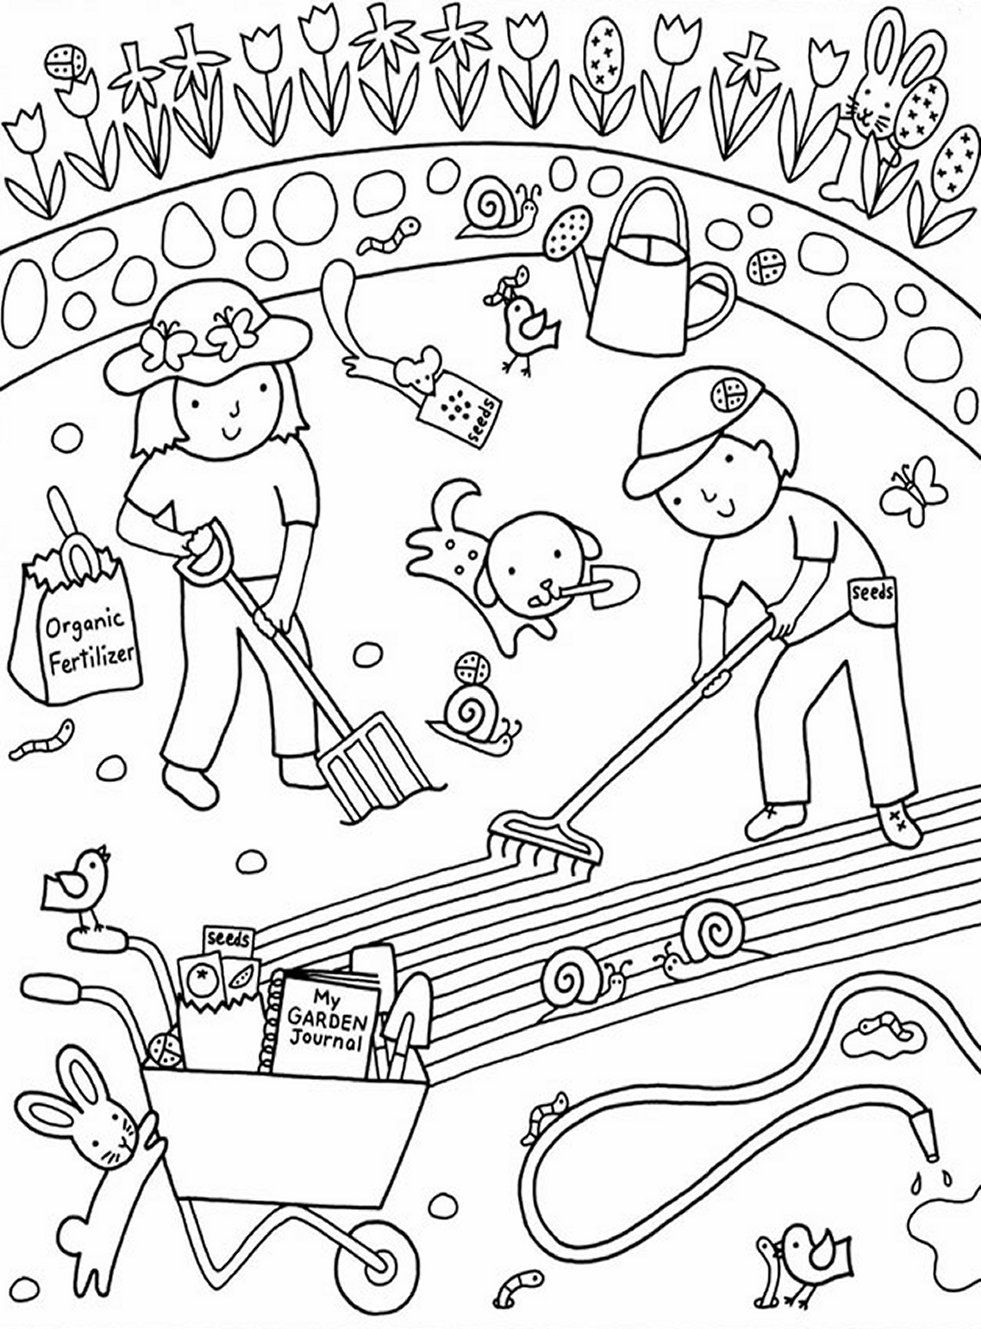 Kids gardening coloring pages free colouring pictures to for Flower garden coloring pages printable